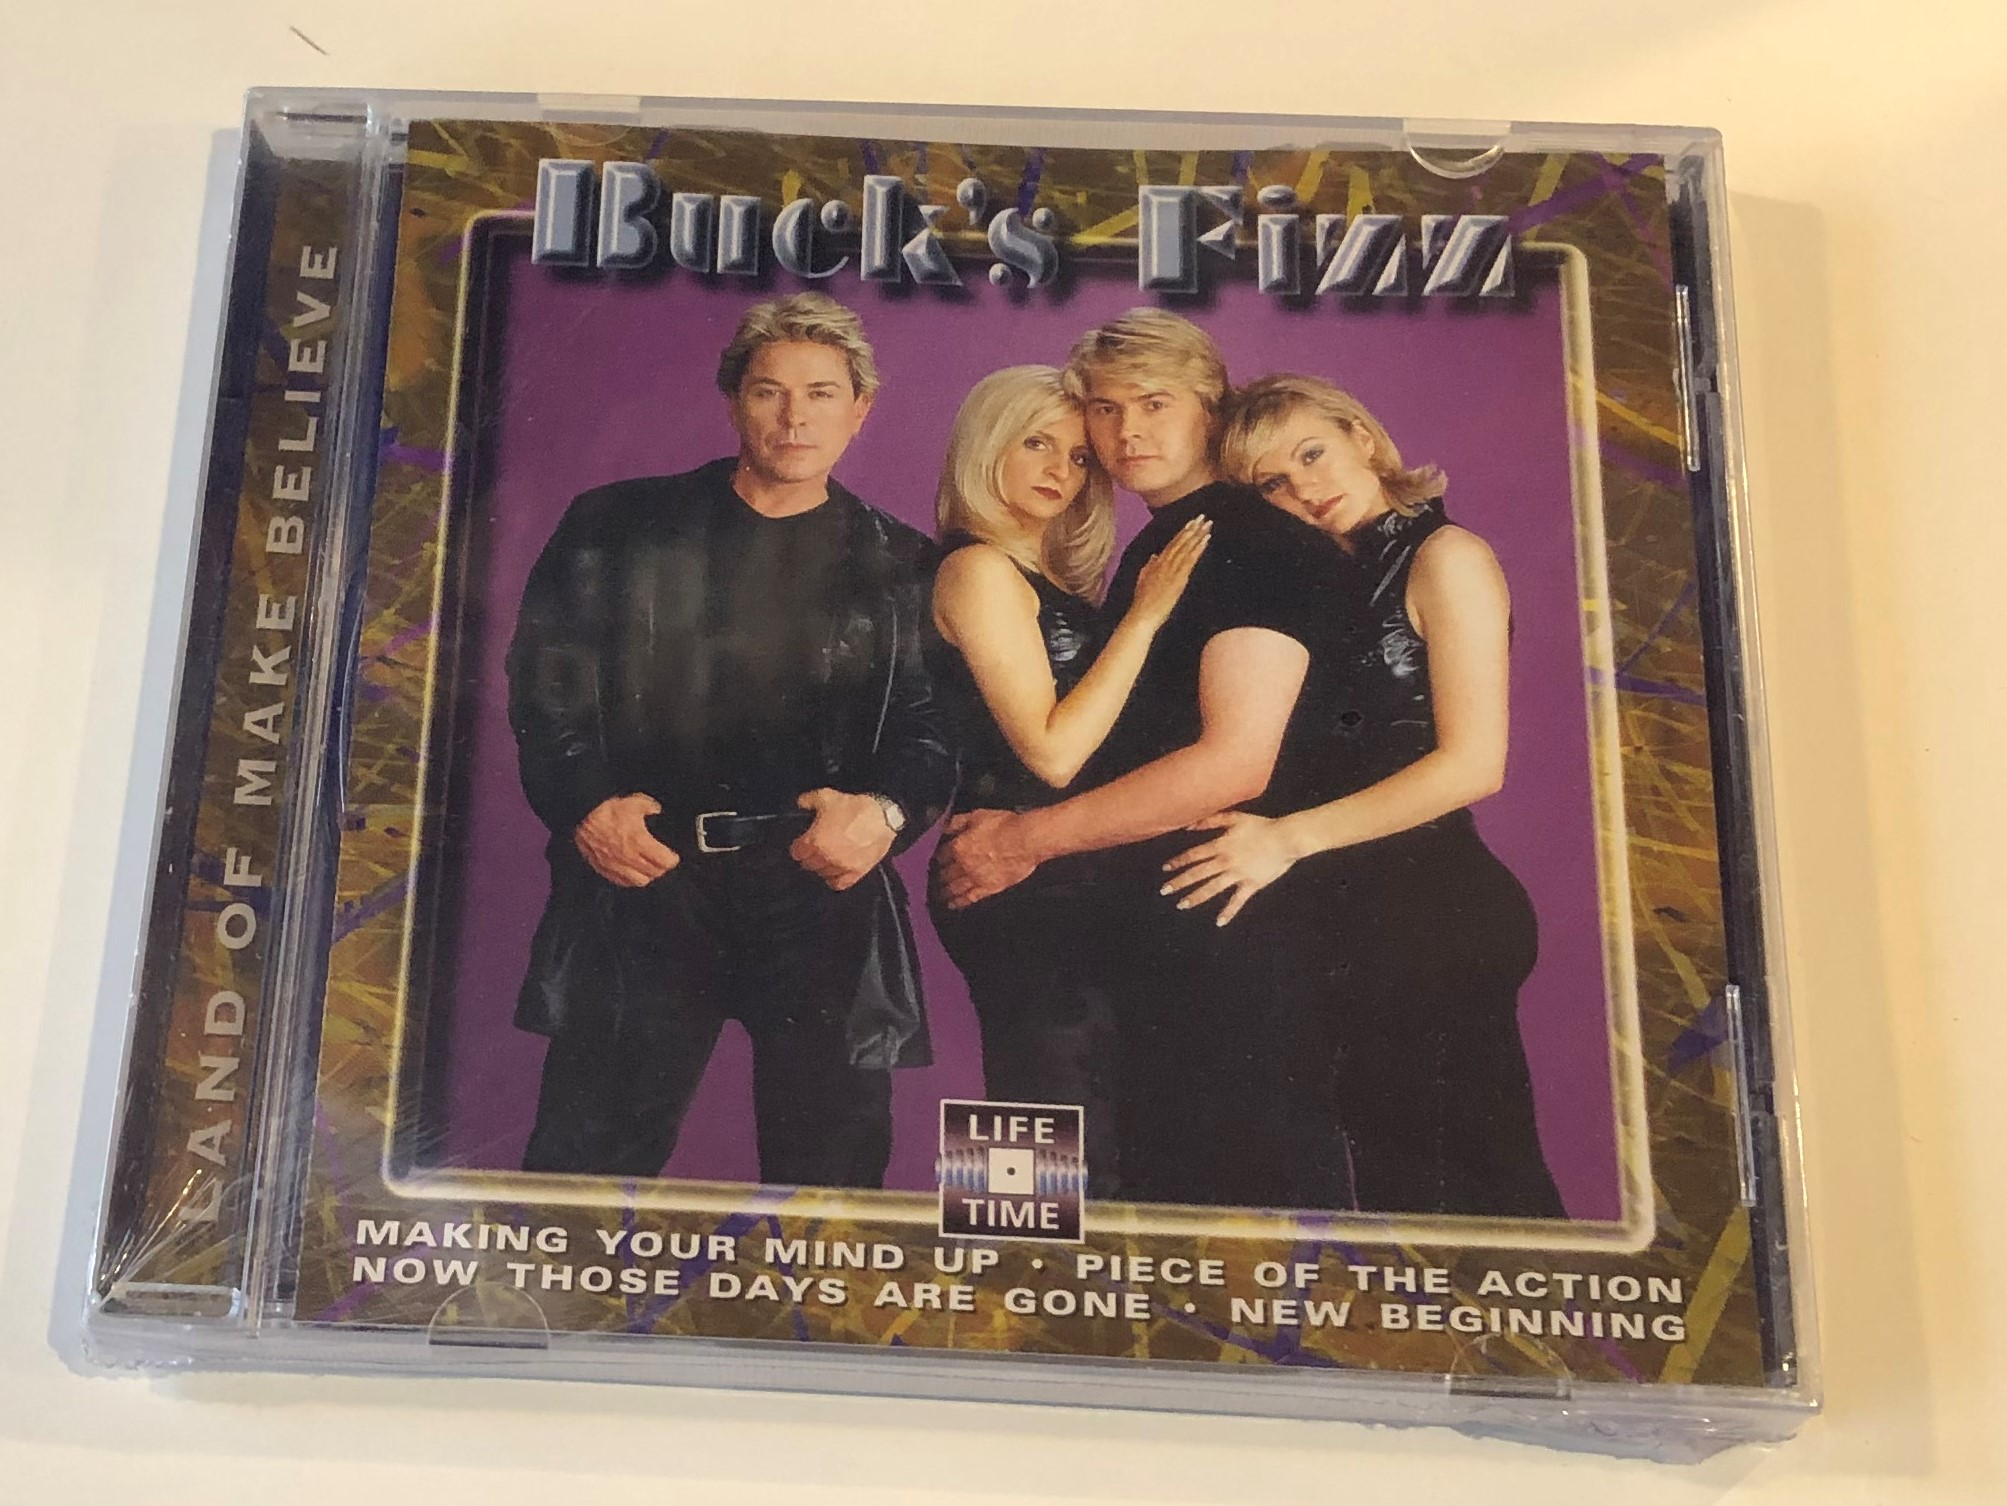 bucks-fizz-land-of-make-believe-making-your-mind-up-piece-of-the-action-now-those-days-are-gone-new-beginning-l.t.-series-audio-cd-lt-5070-1-.jpg